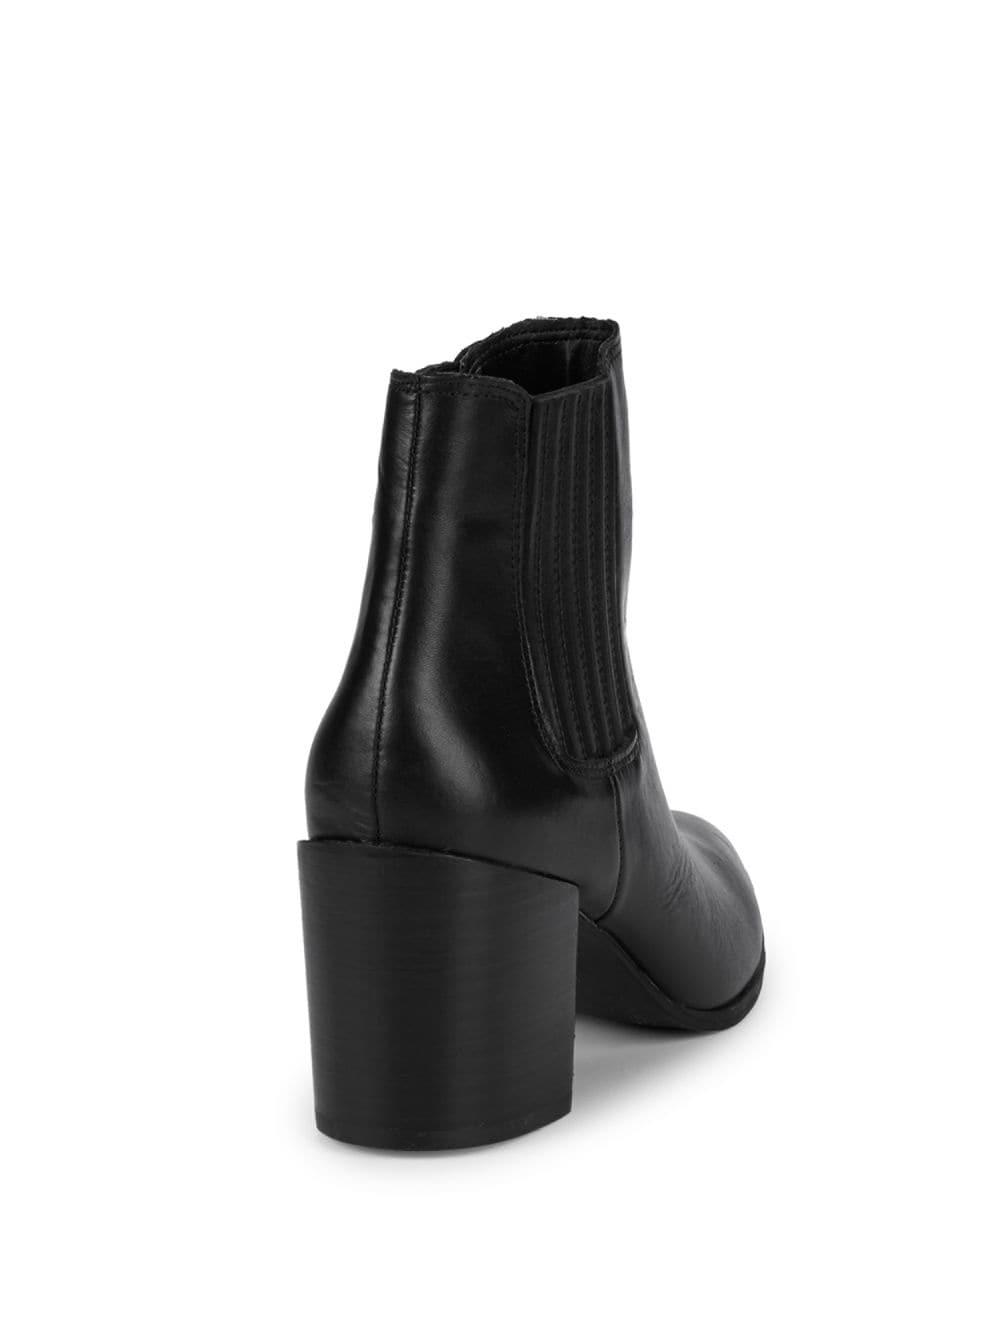 07cbc993010 Lyst - Steve Madden Jain Pointed-toe Leather Booties in Black